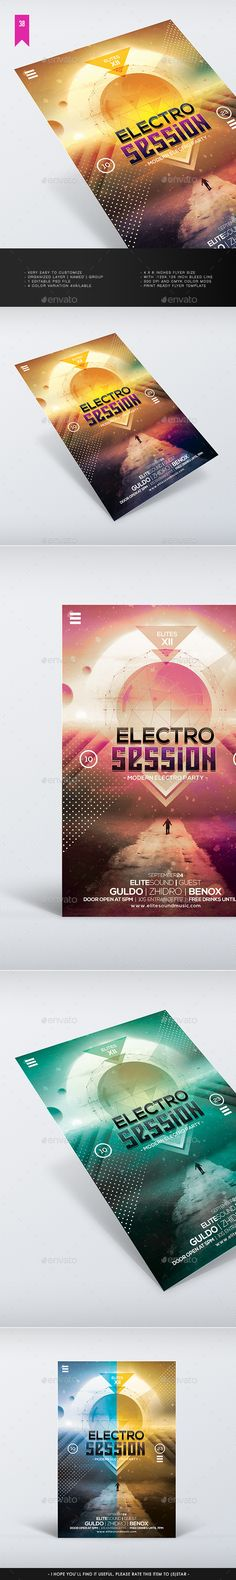 Electro Session - Flyer Template PSD #design Download: http://graphicriver.net/item/electro-session-flyer-template/12967758?ref=ksioks